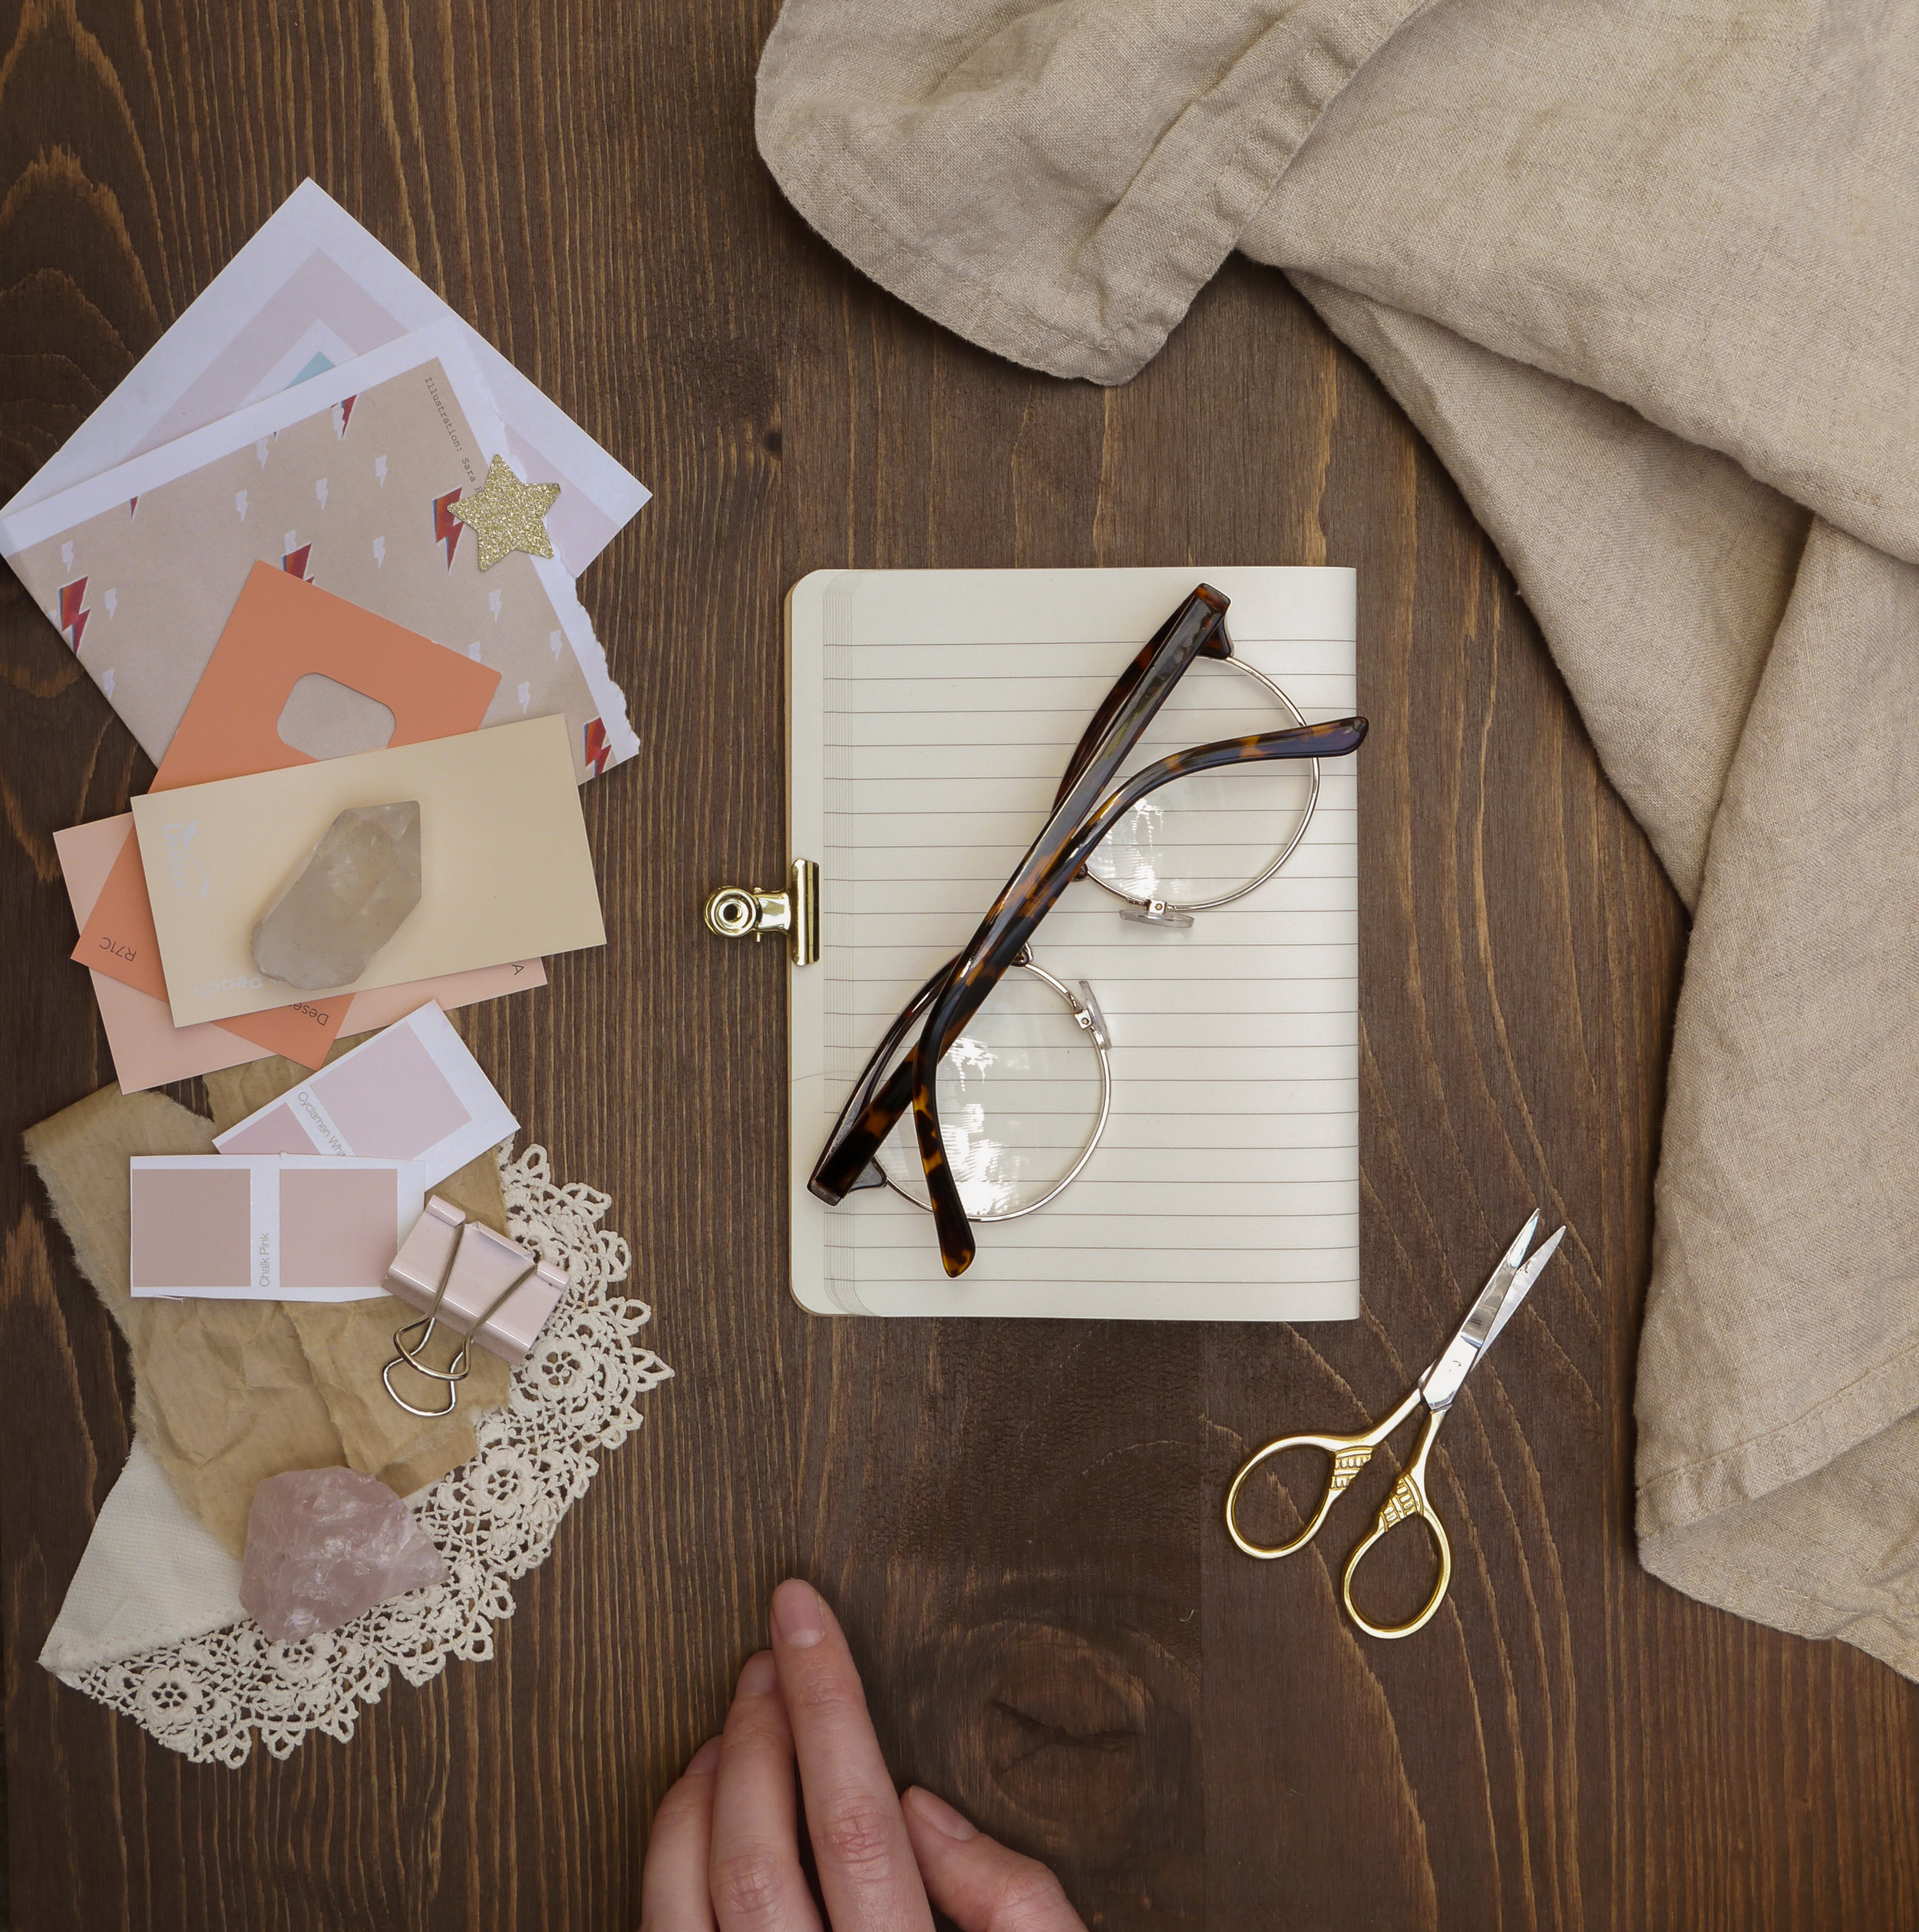 how to make a creative vision board